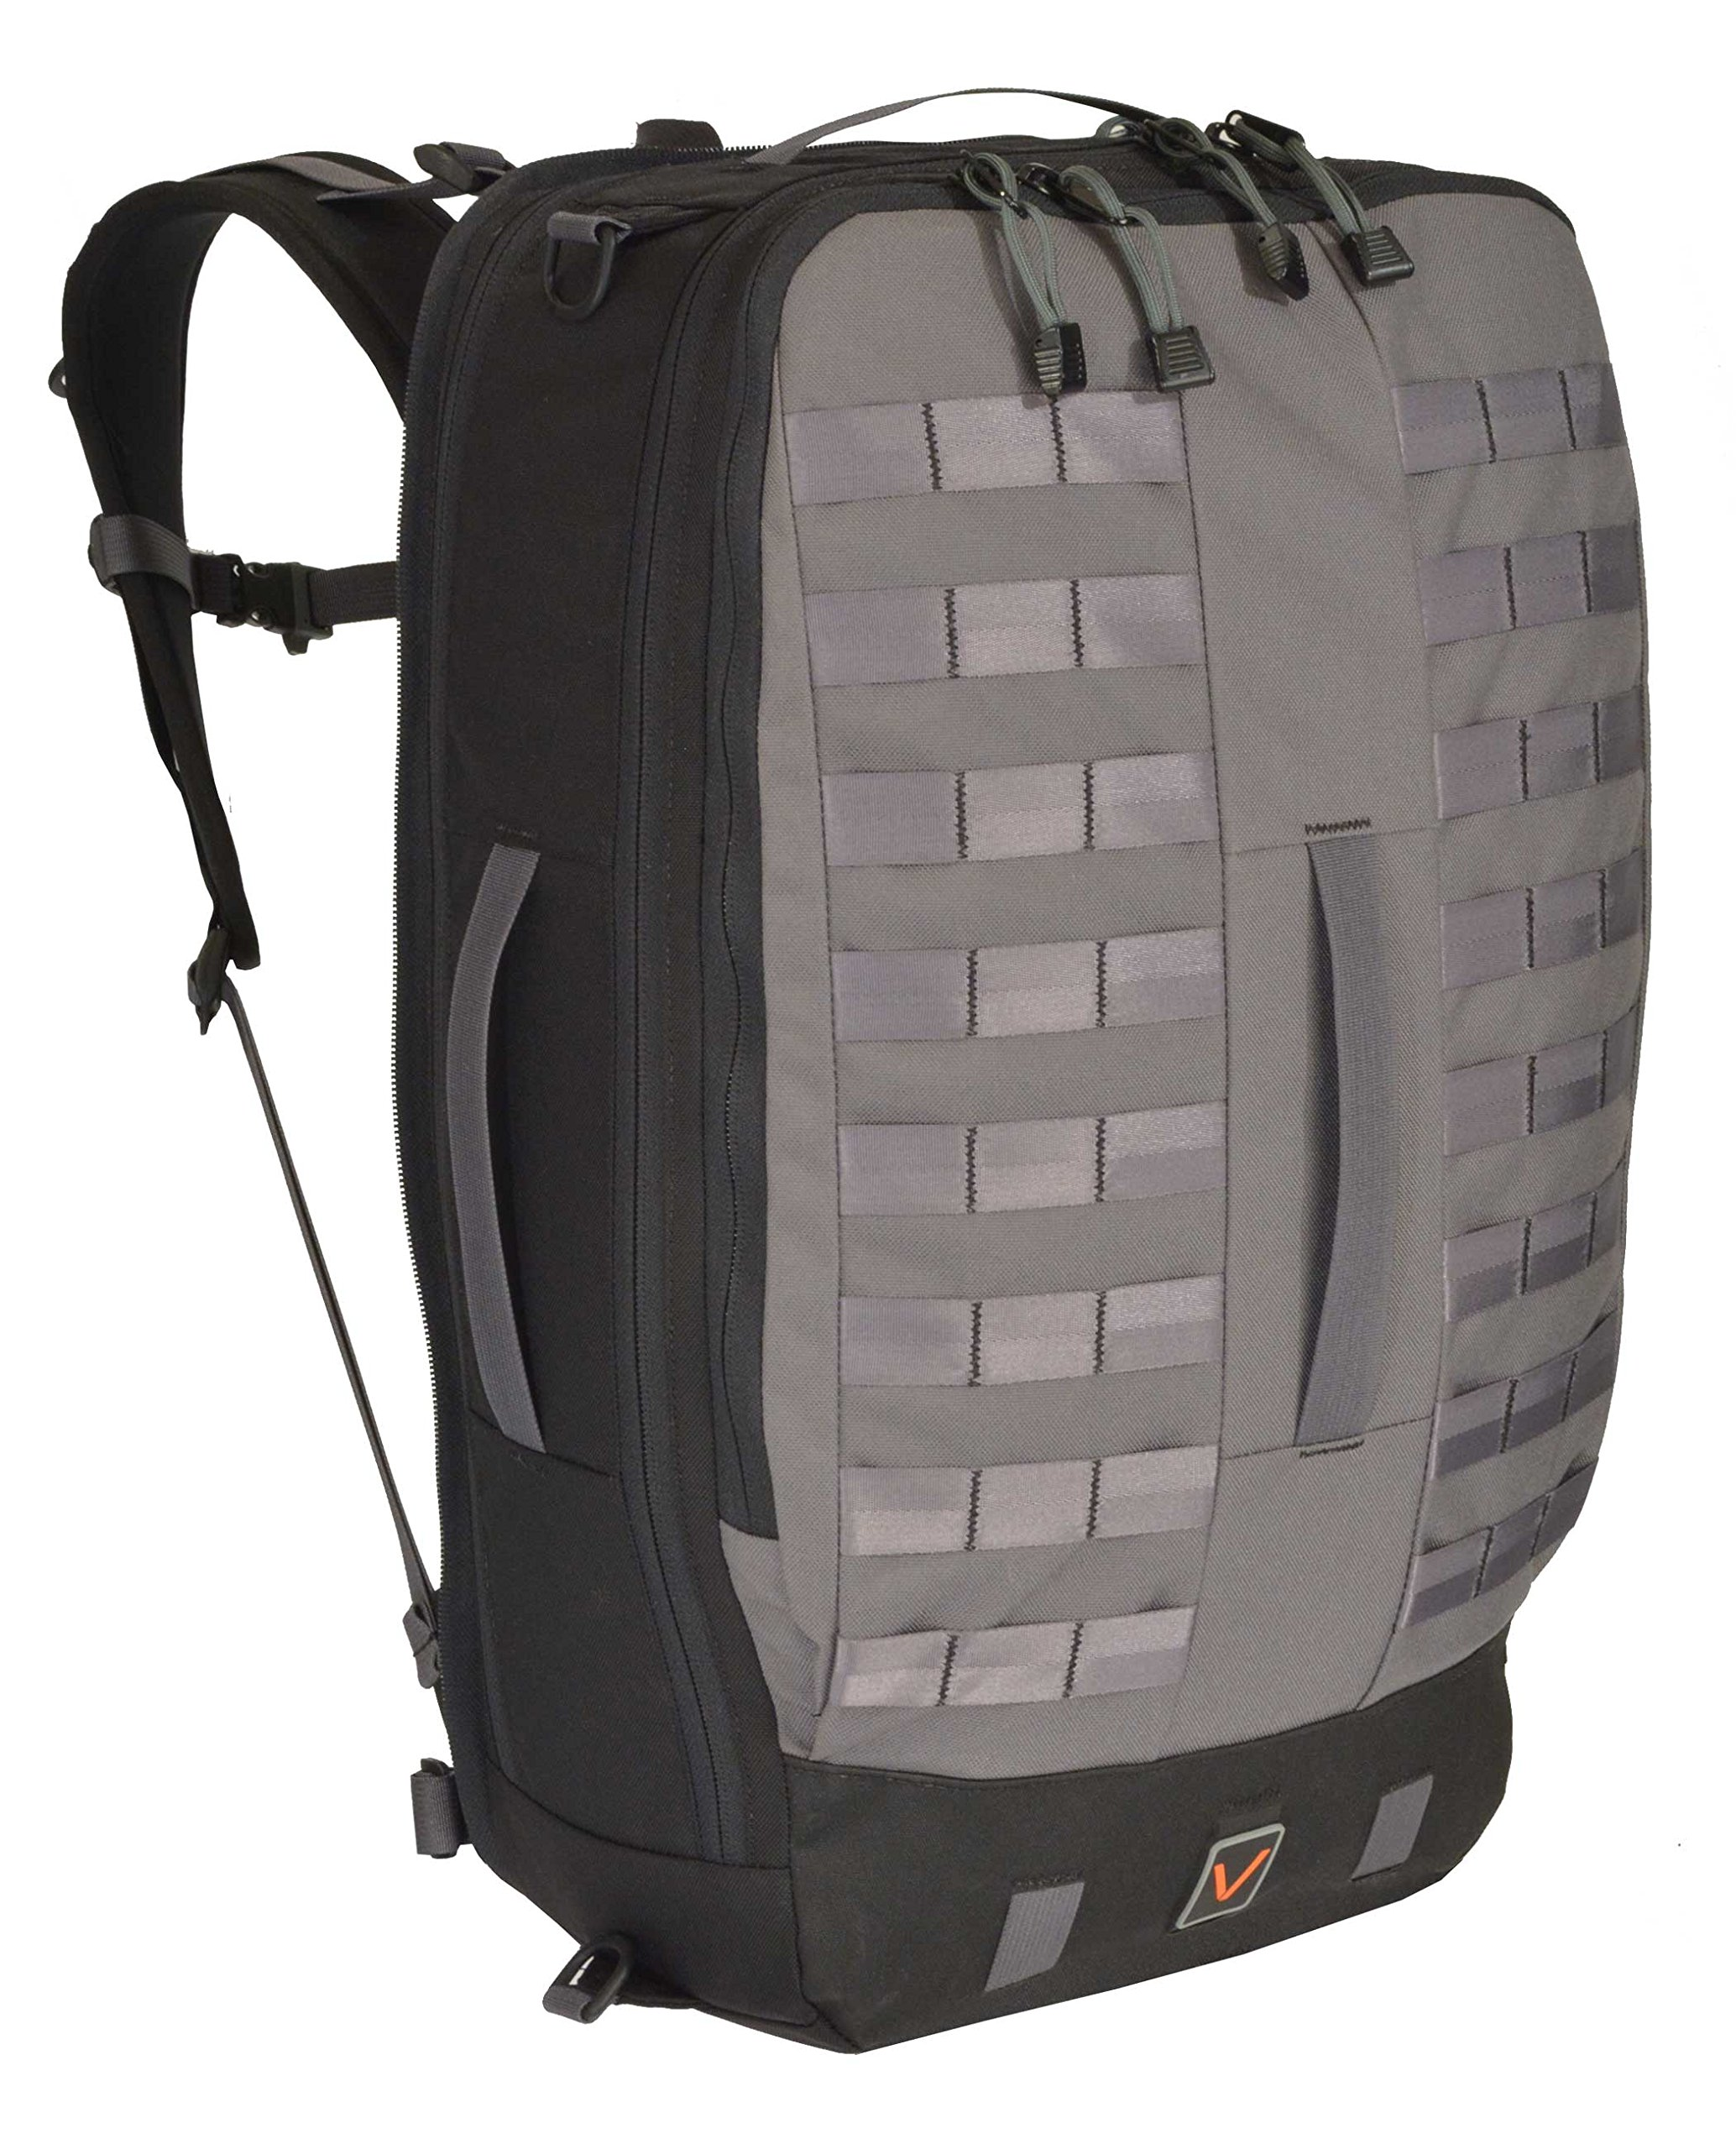 Velix Thrive 35 Convertible Travel Laptop backpack, Grey, Women's Small (VLX-THR35W-GRY-S) by Velix